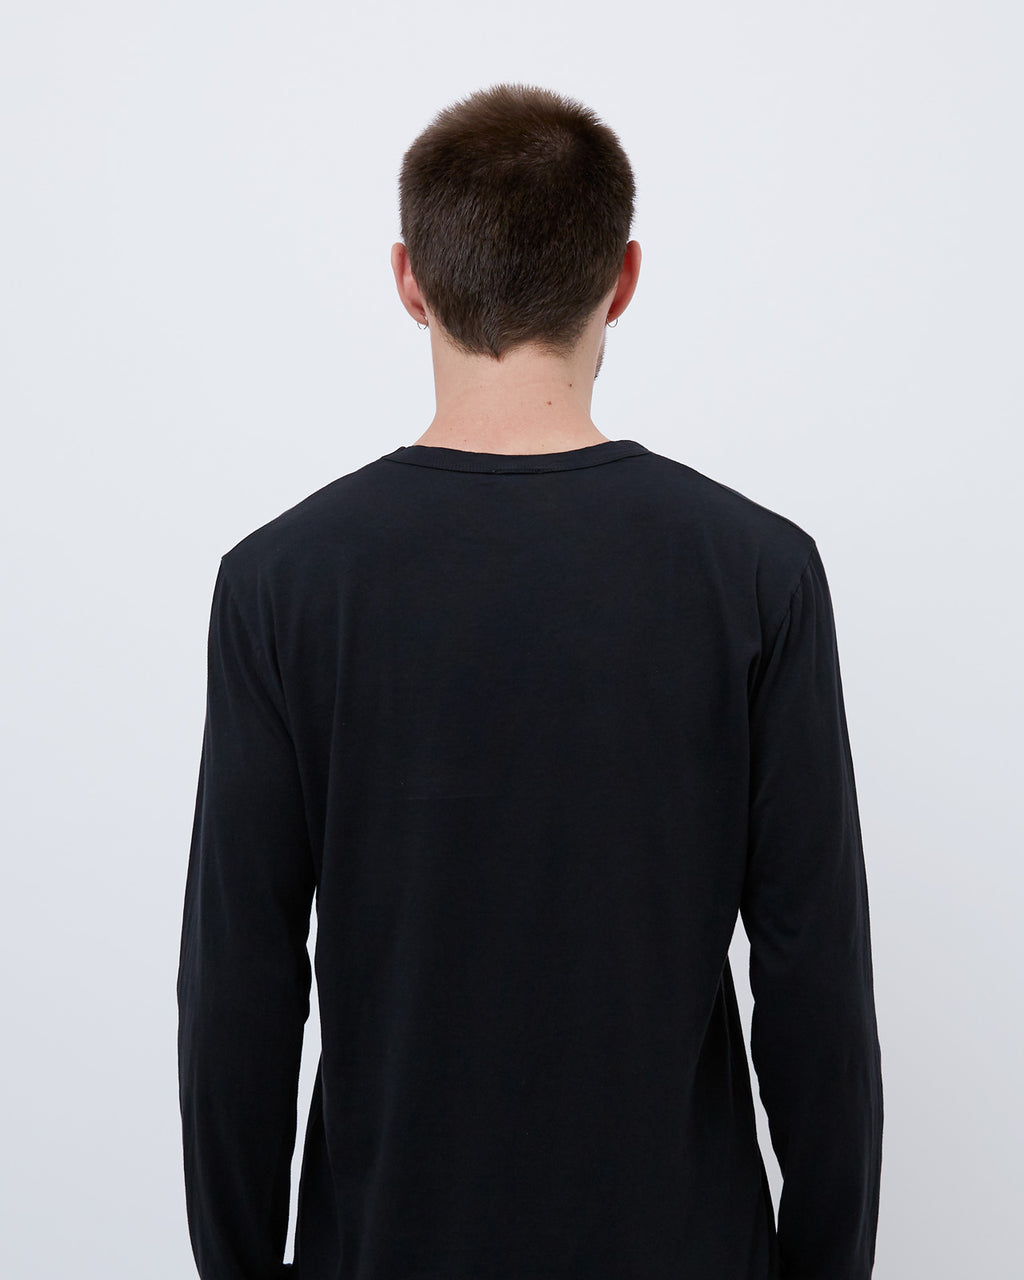 The Long Sleeve Crew Neck Tee in Black